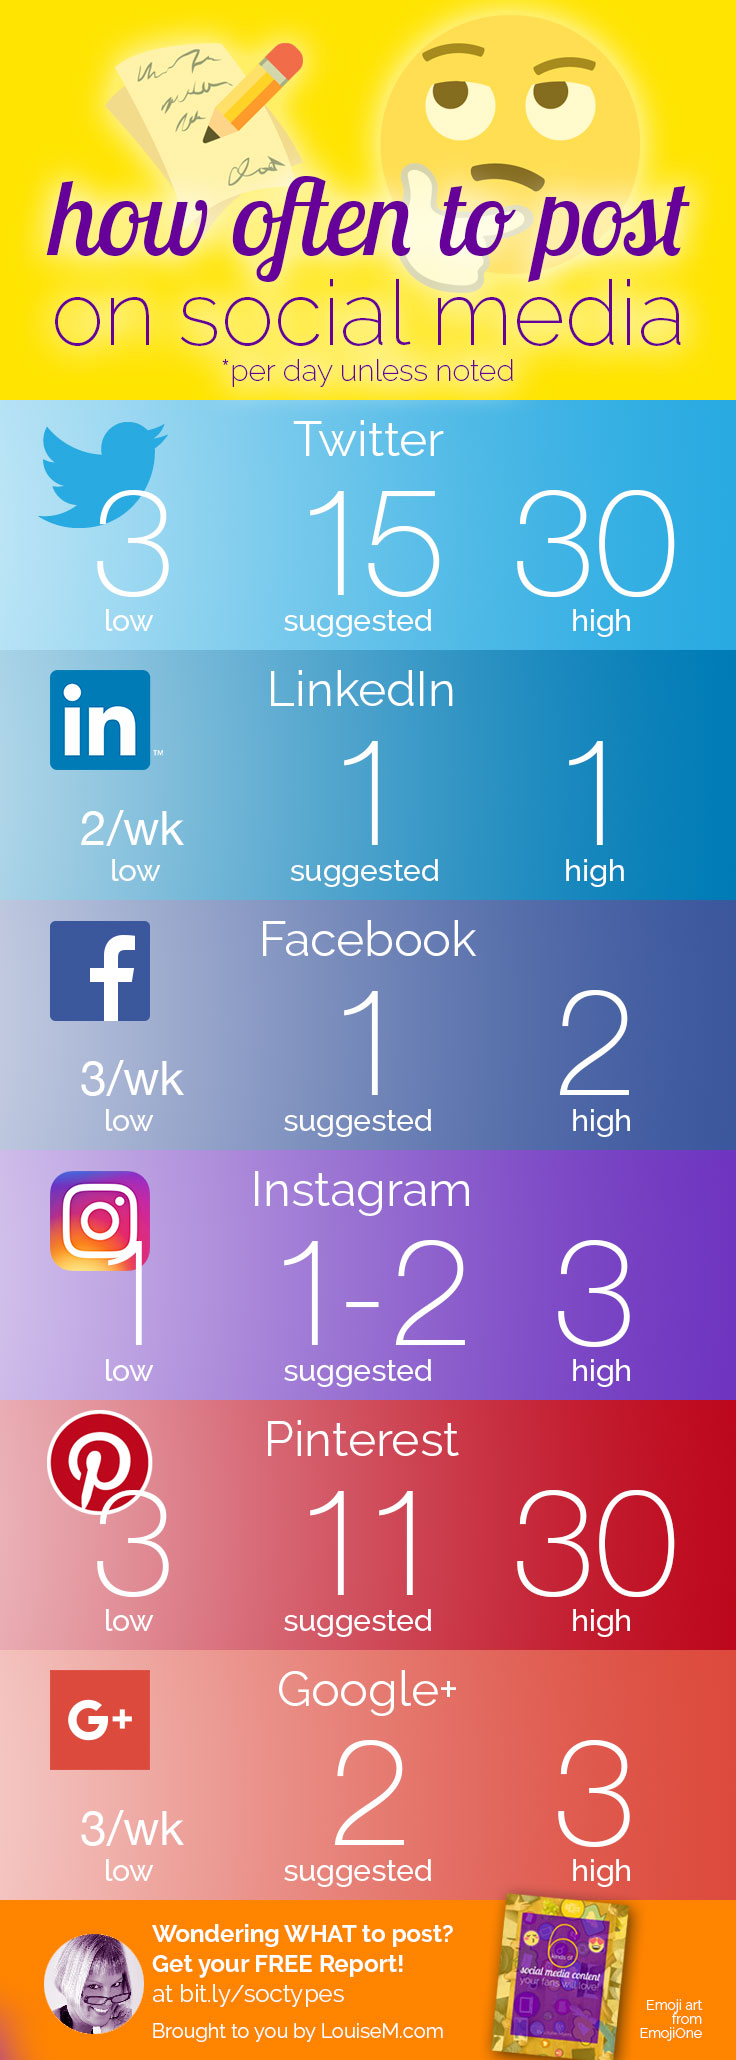 How Often To Post On Social Media